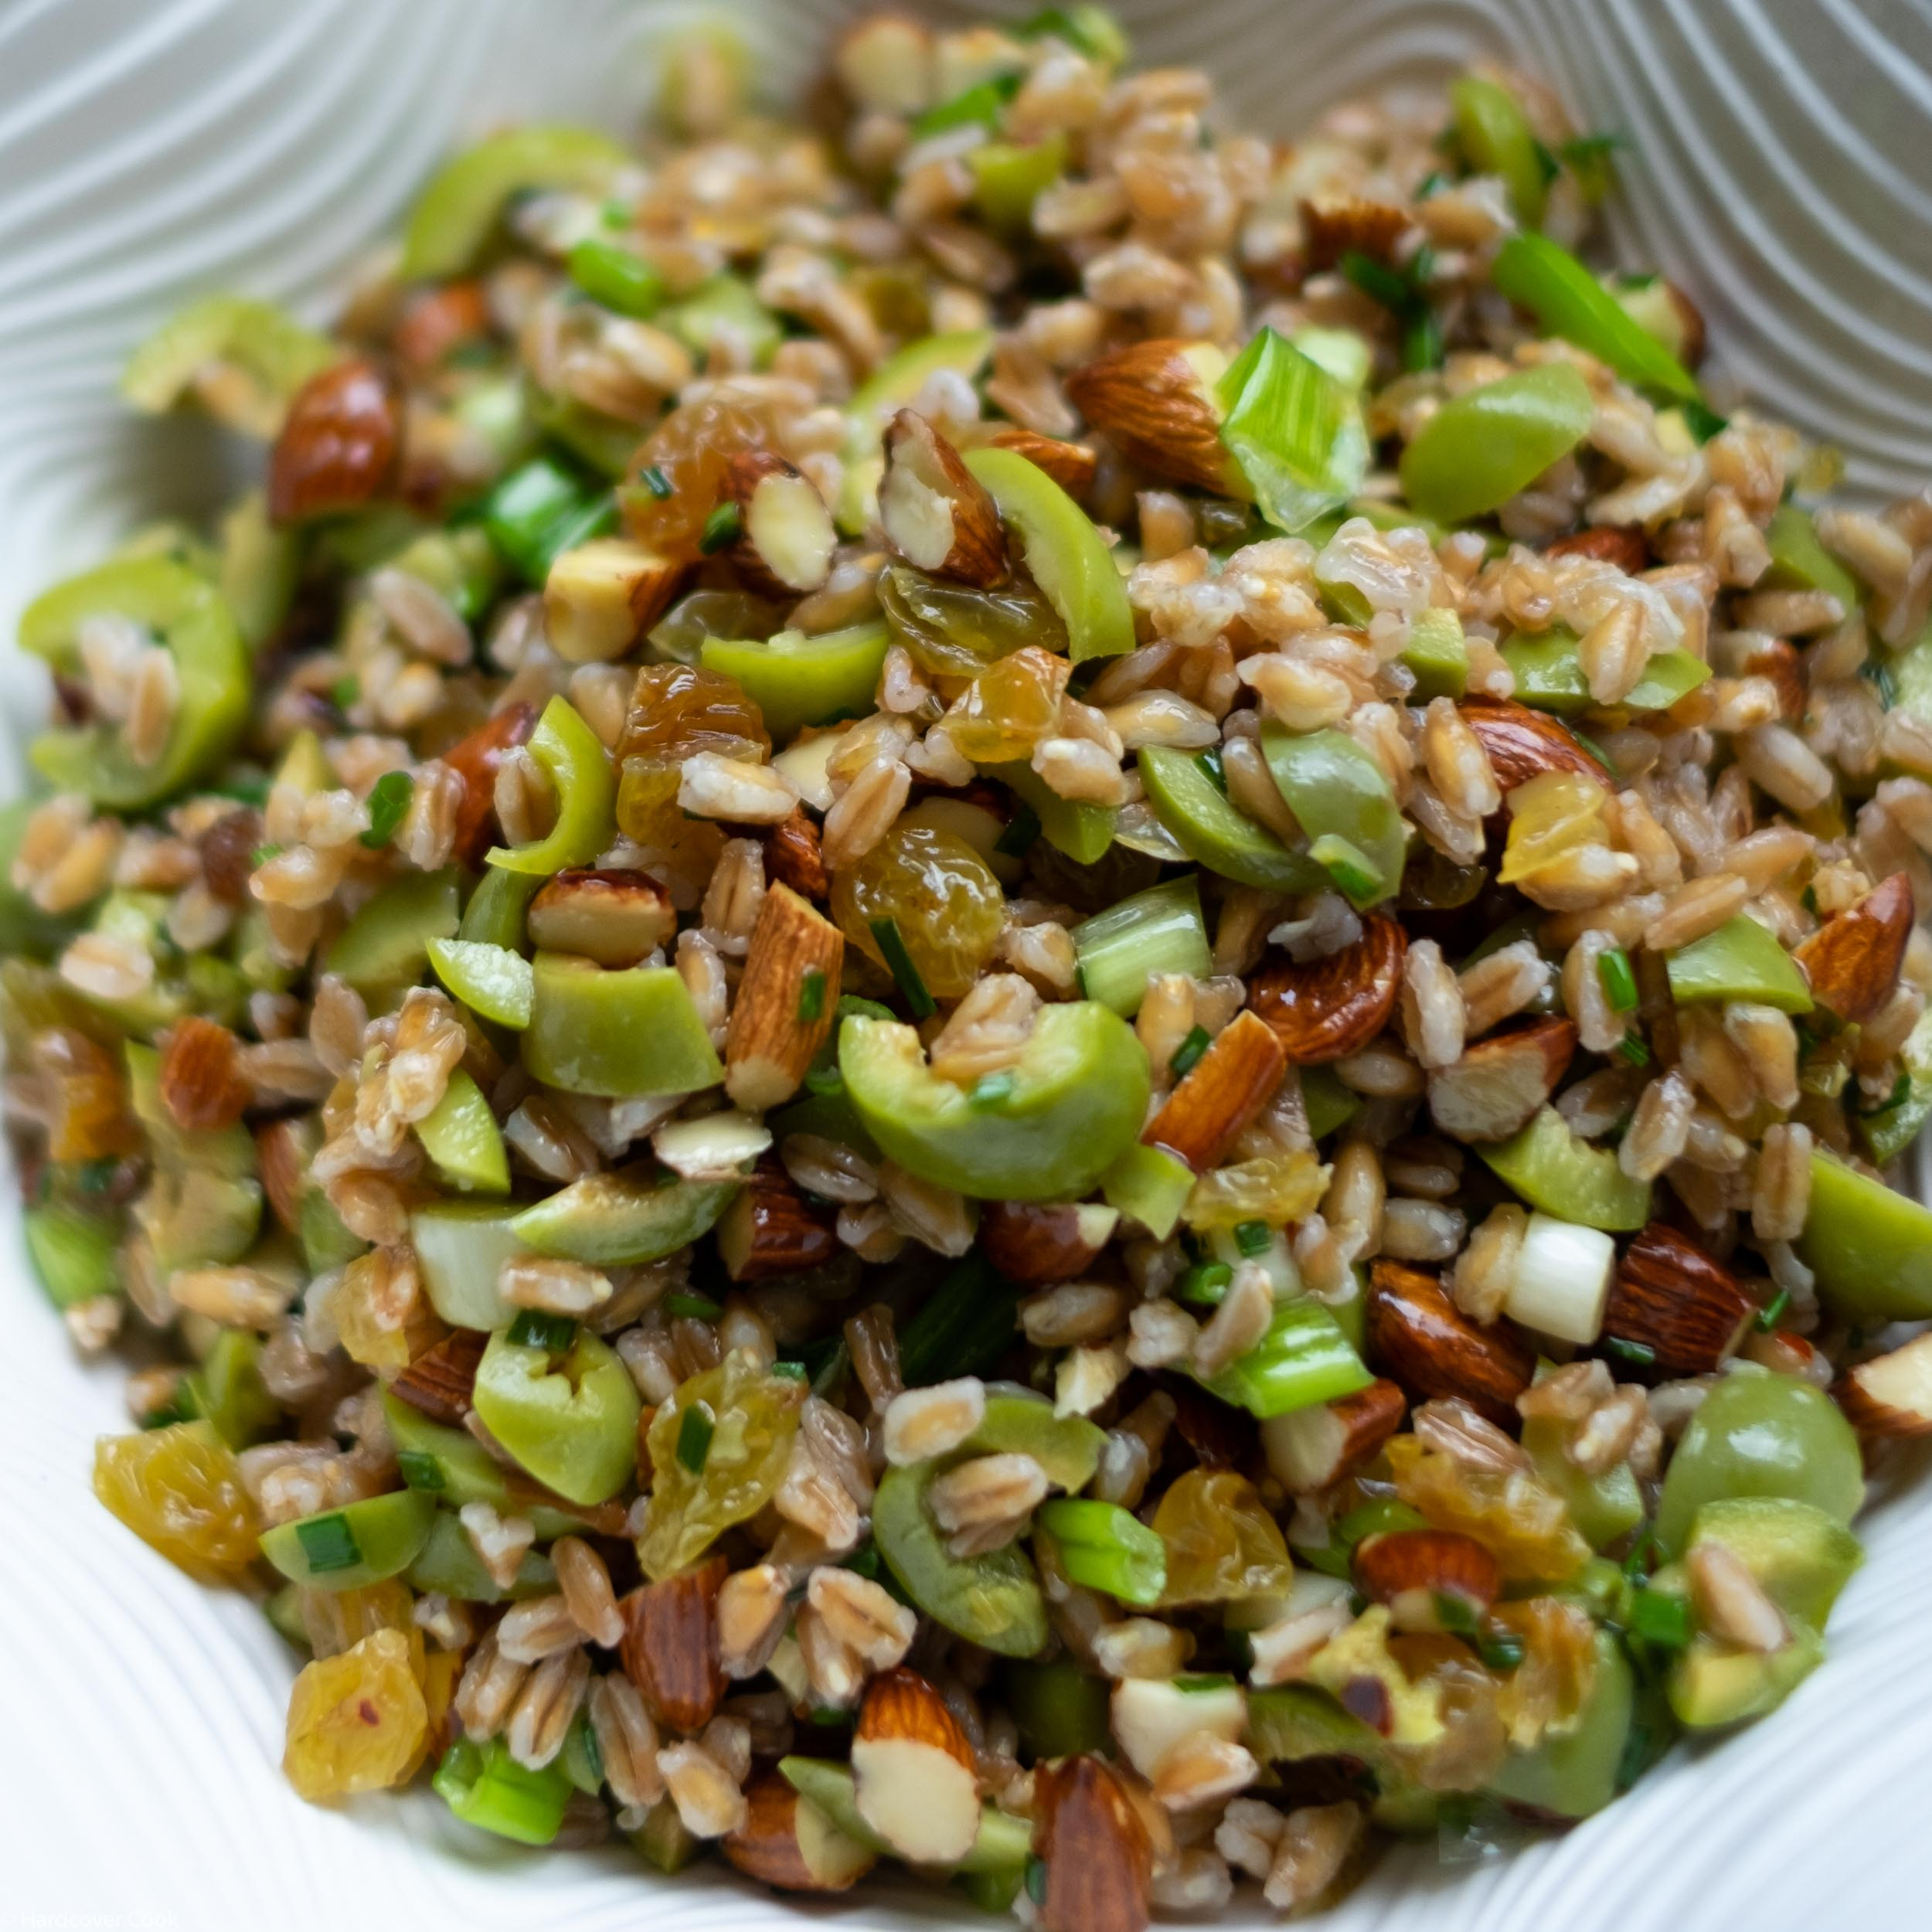 Farro Salad from Near & Far